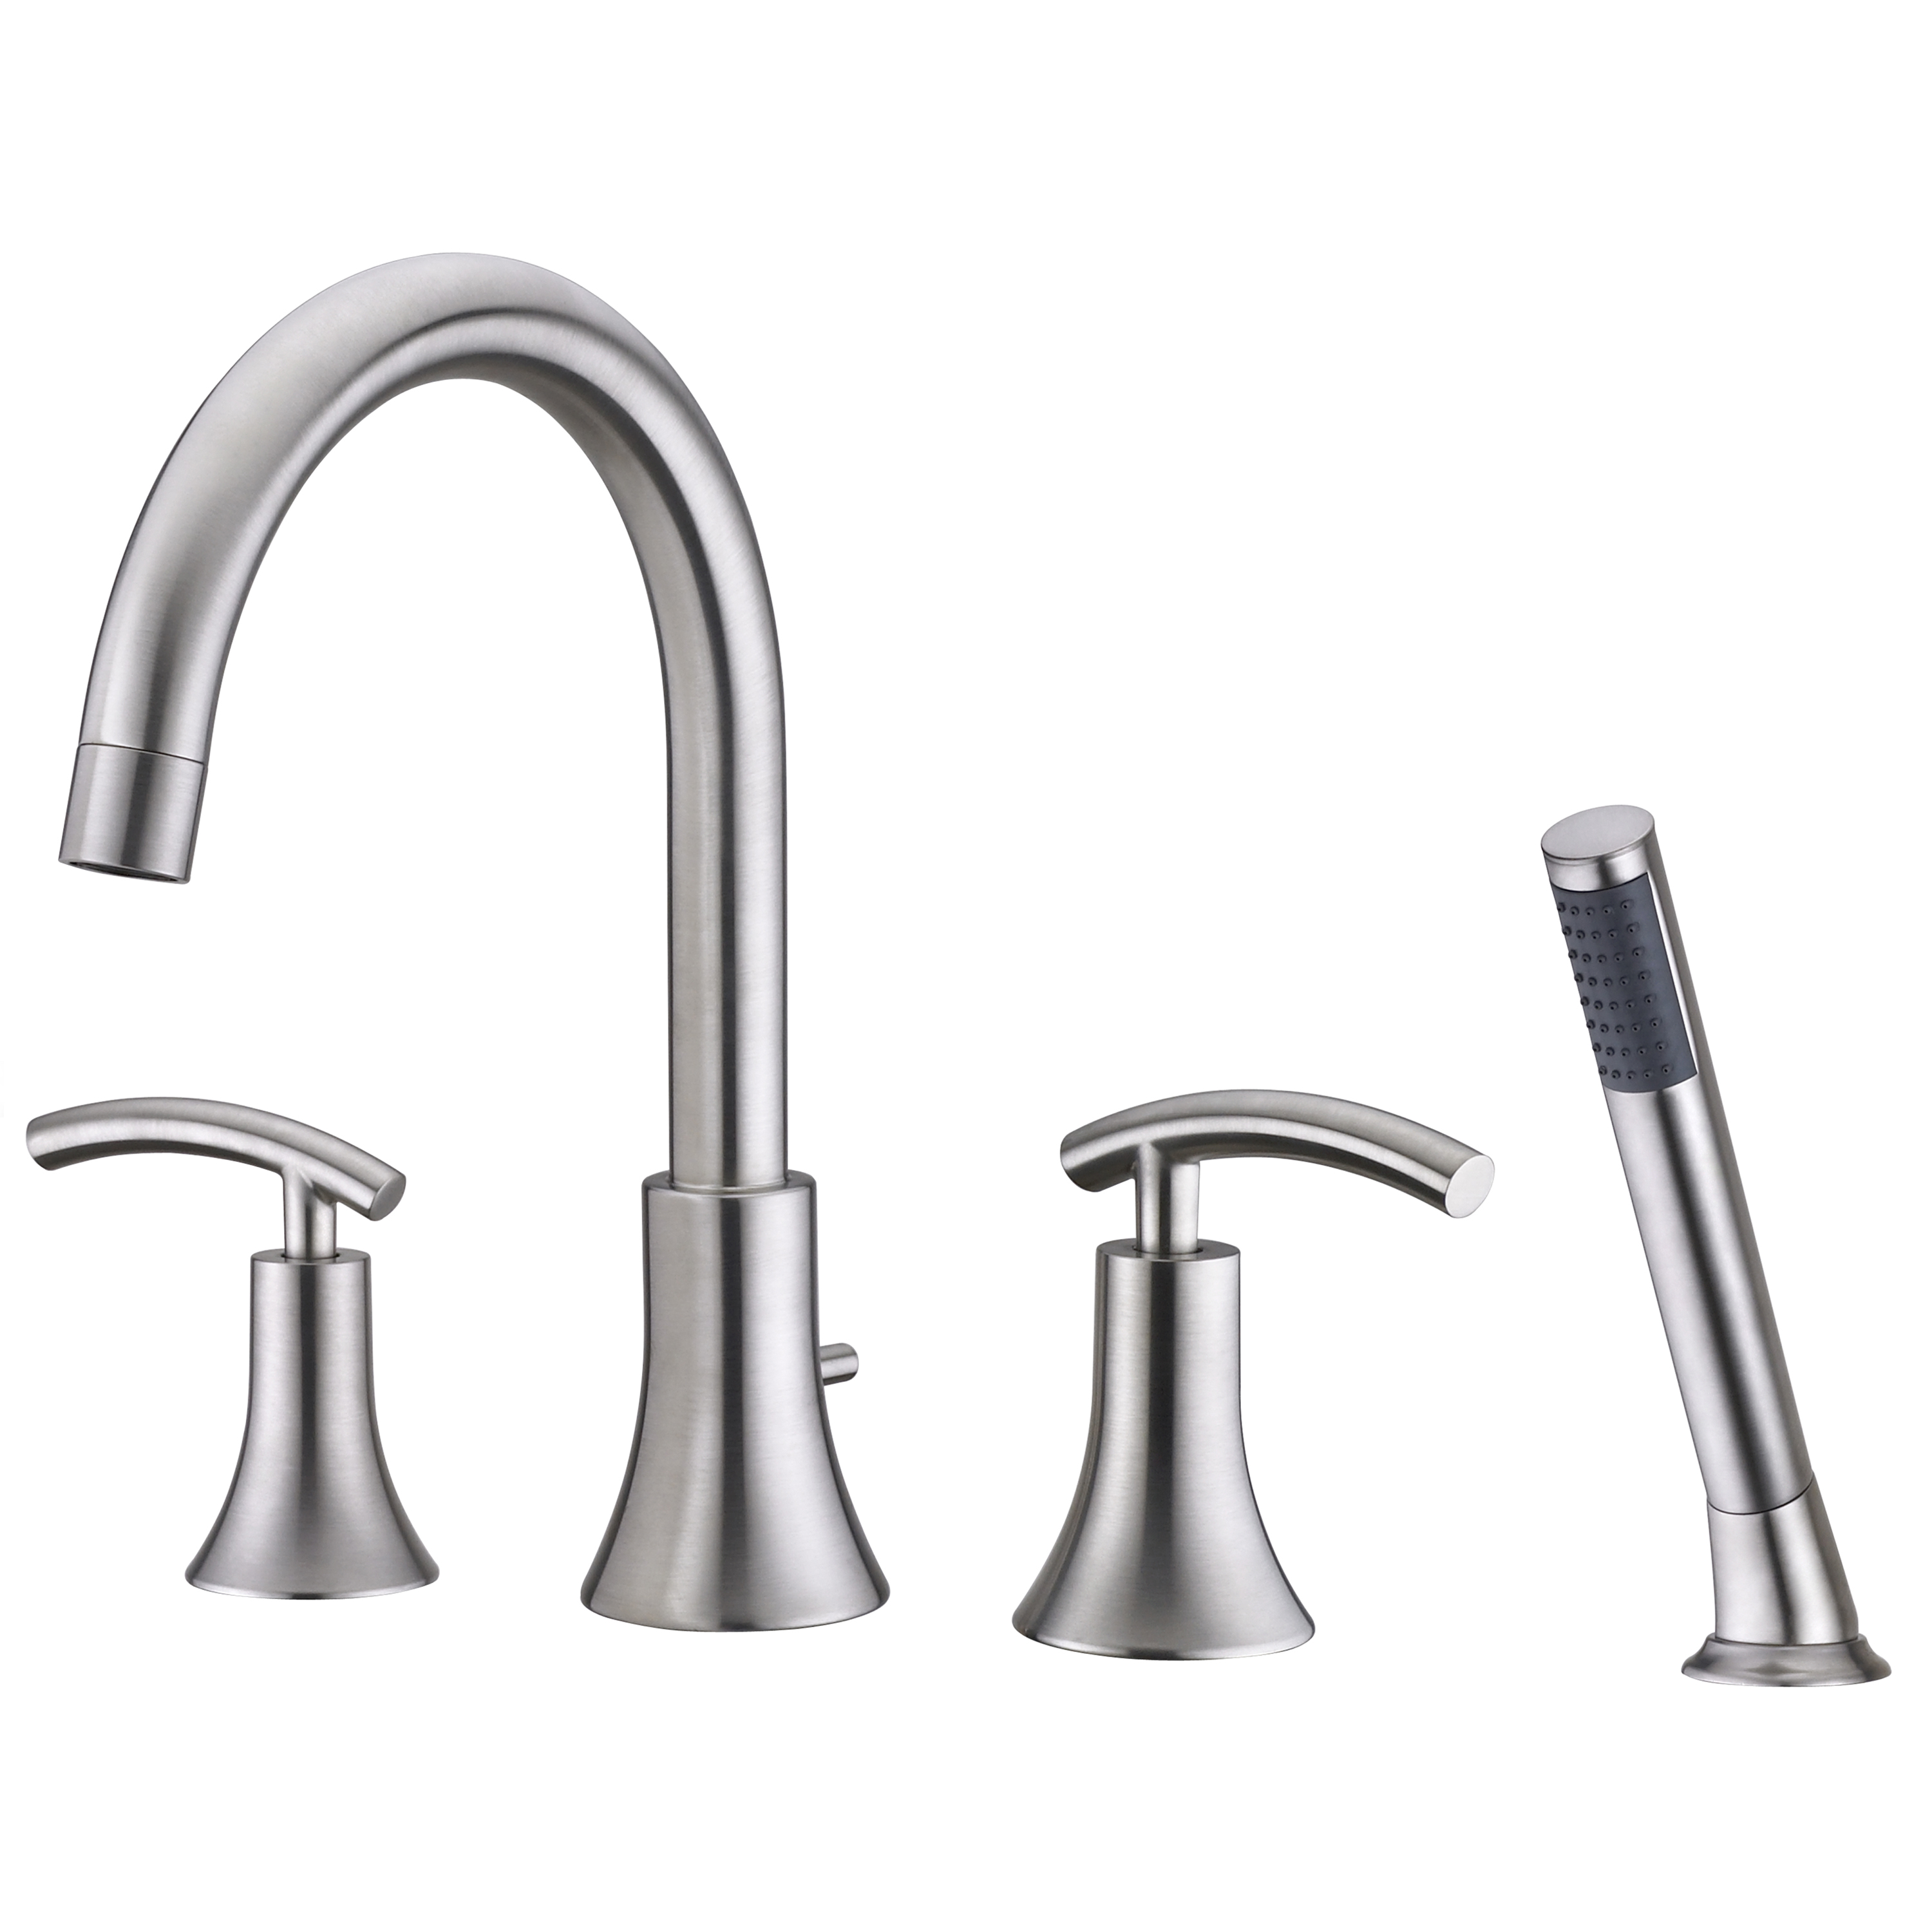 Sweep Collection Roman Tub Faucet With Hand Shower